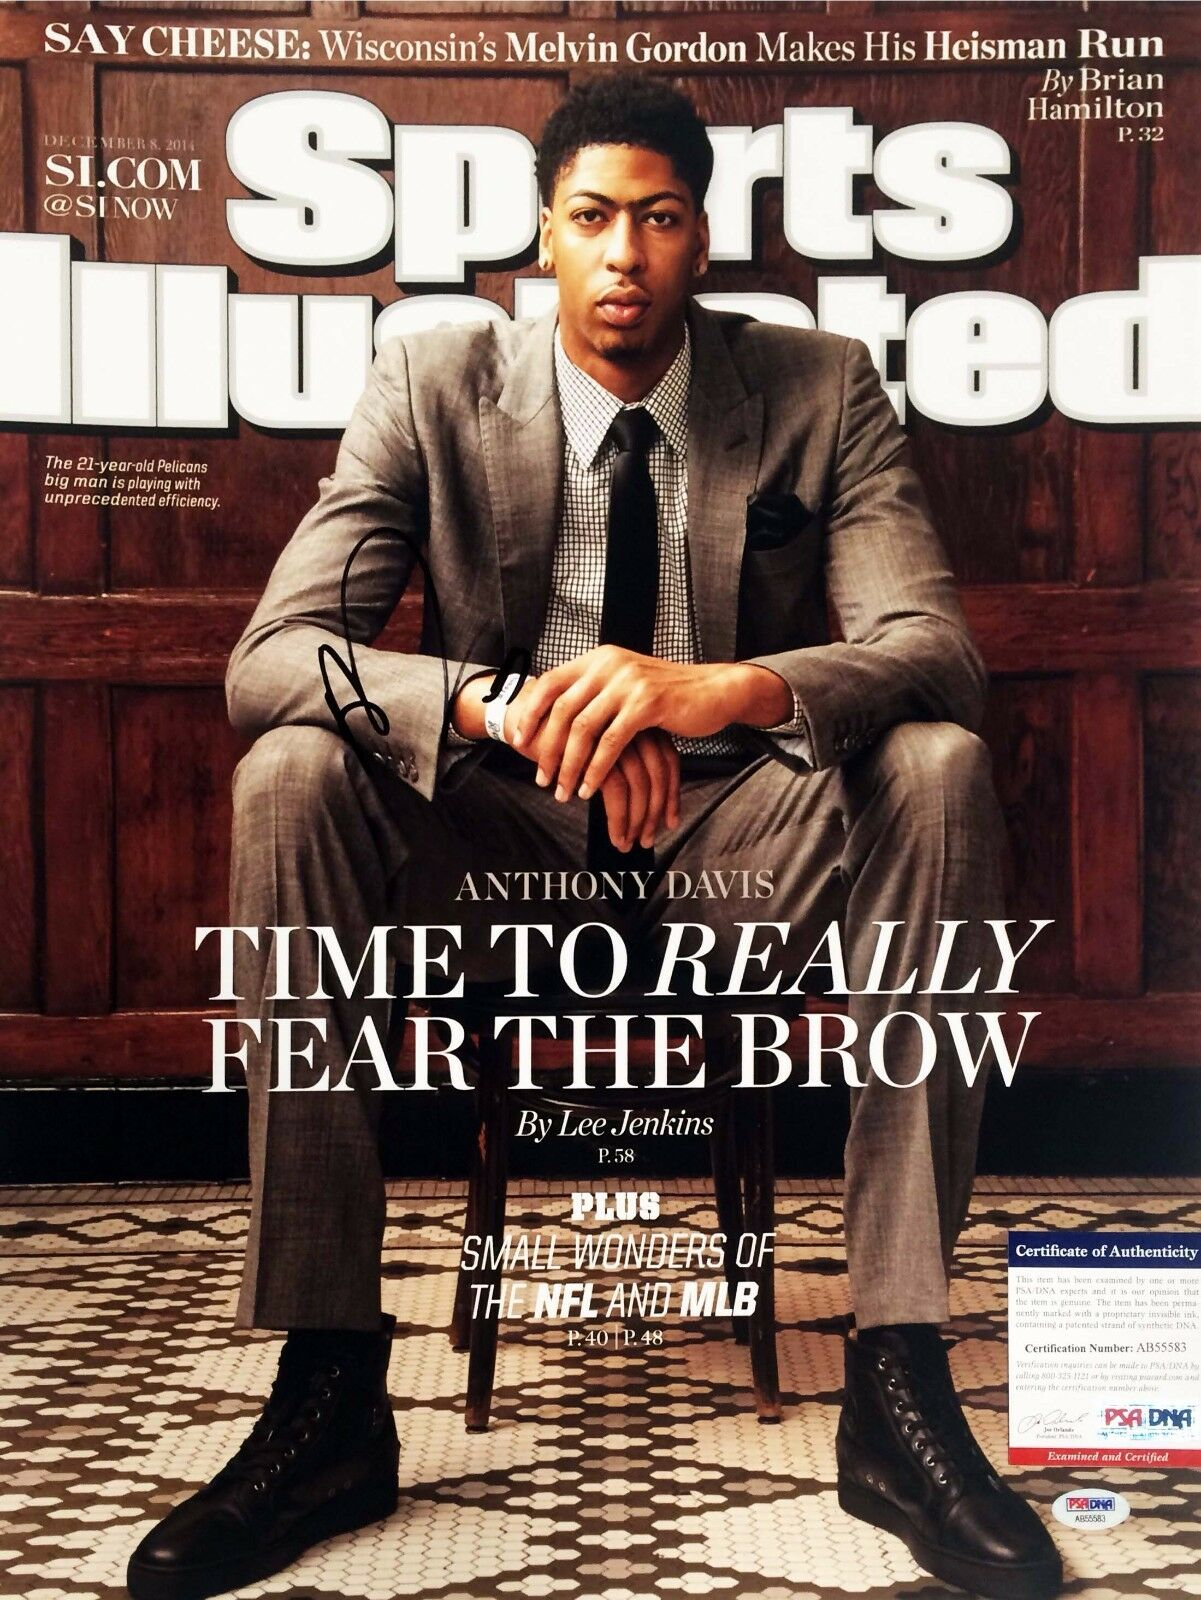 Pelicans Anthony Davis Signed Sports Illustrated 16x20 Photo PSA/DNA # AB55583